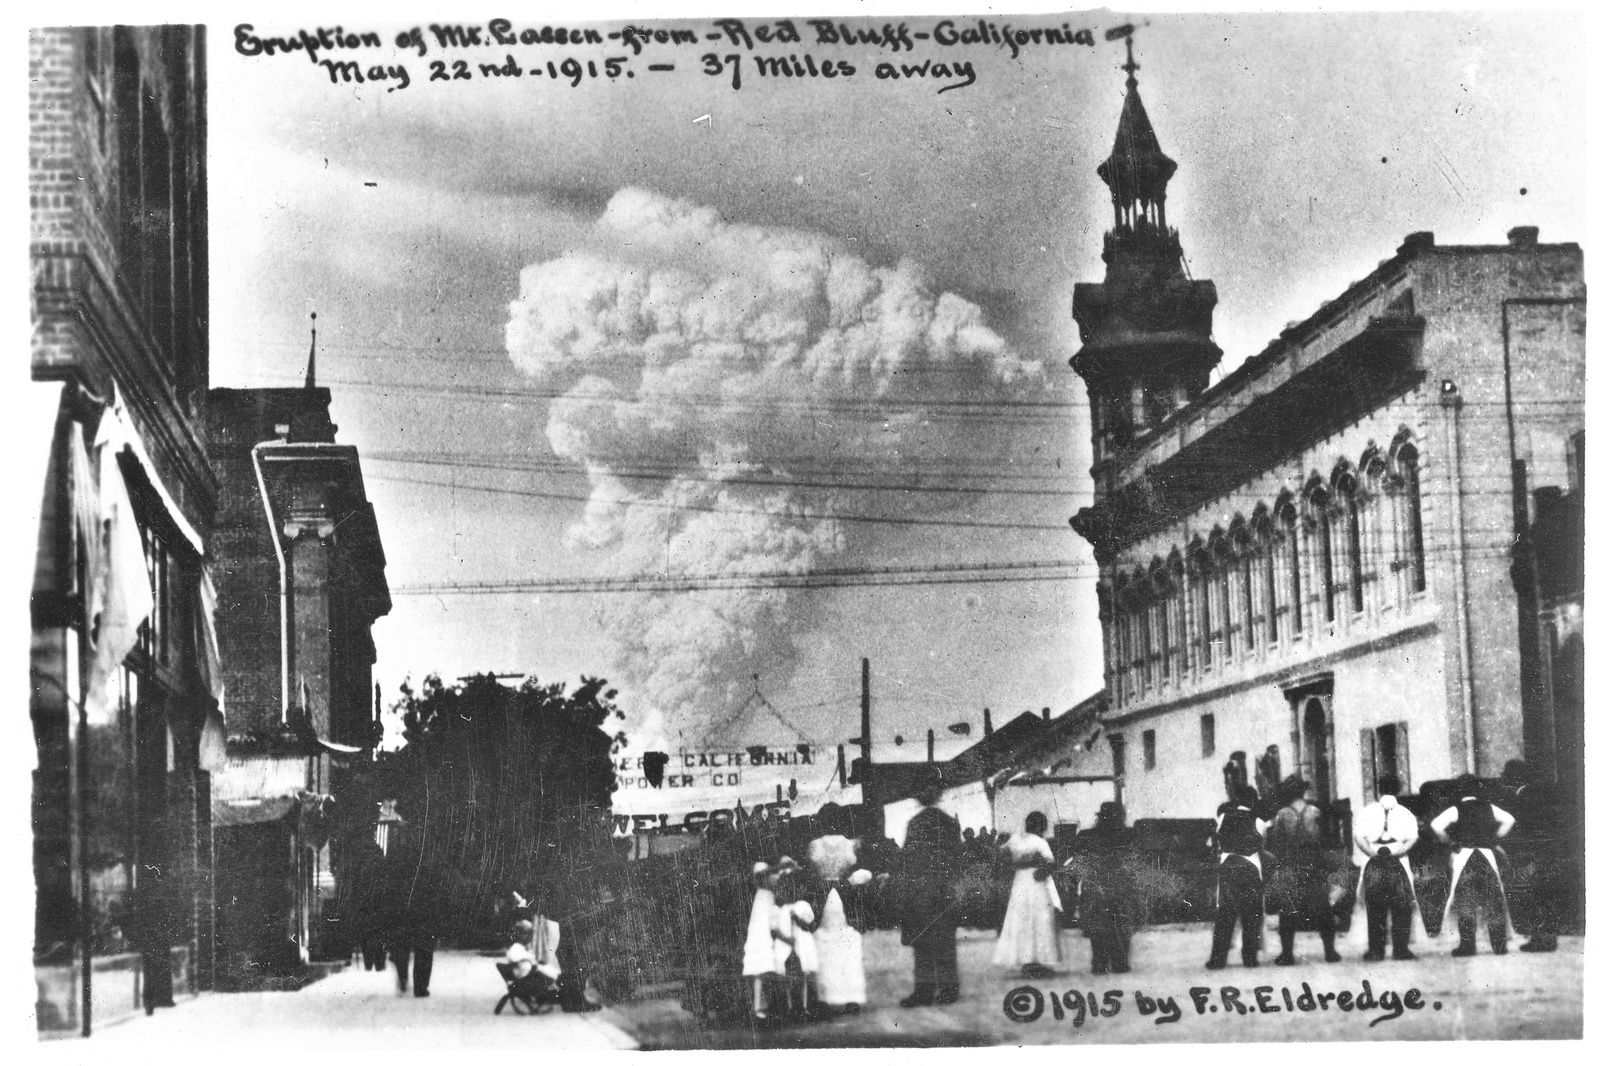 The eruptive plume Lassen Peak, viewed from Red Bluff May 22, 1915 - Archive F.R.Eldredge wordpress